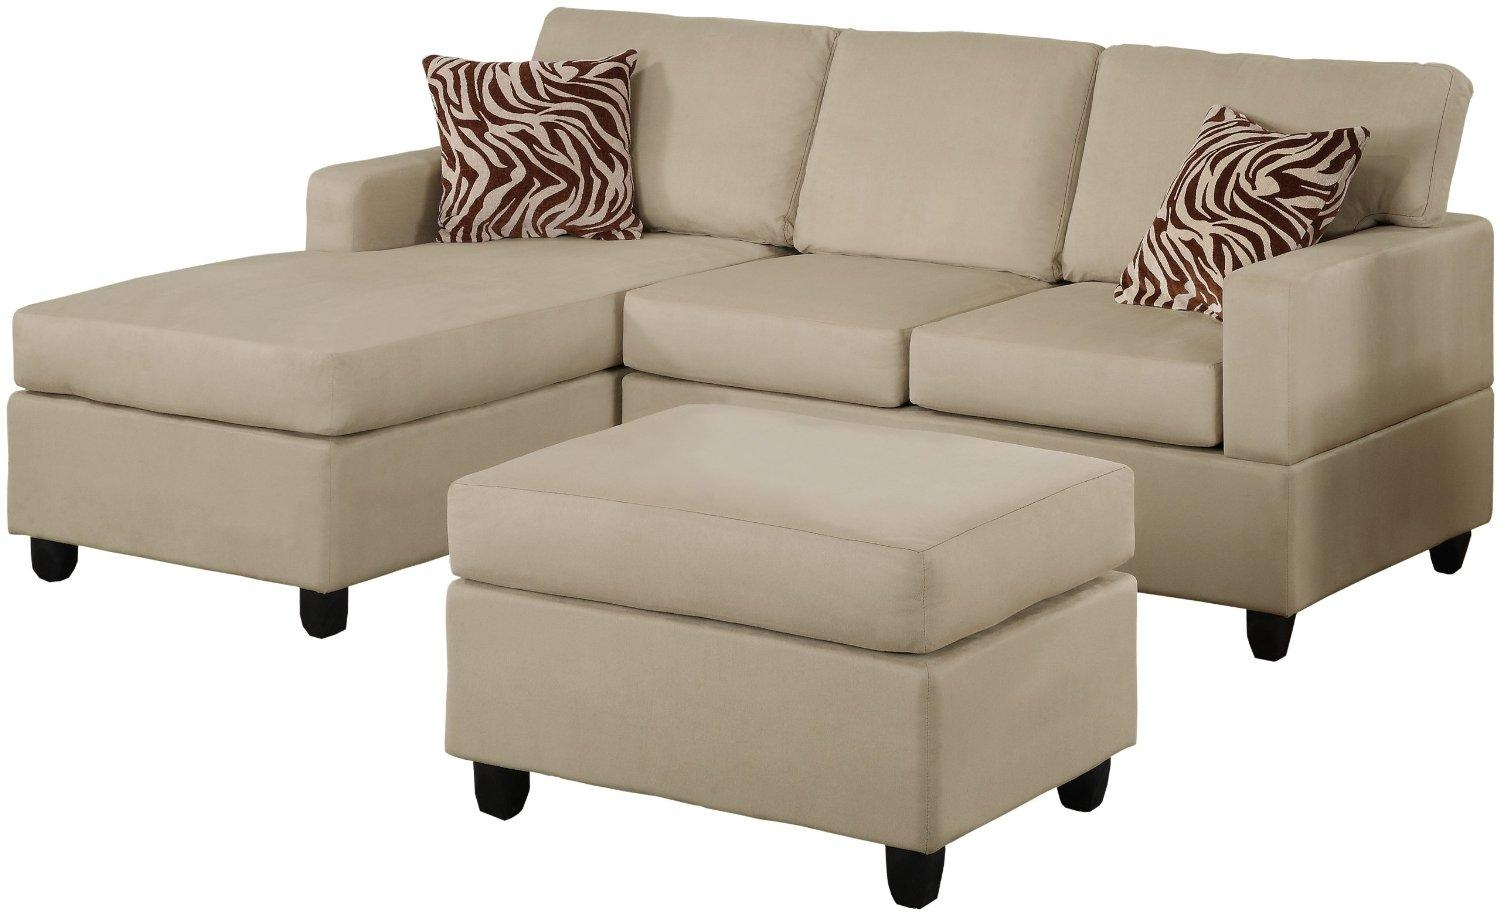 Sofa : Awesome Sofas For Cheap Sale Excellent Home Design Cool In intended for Cool Cheap Sofas